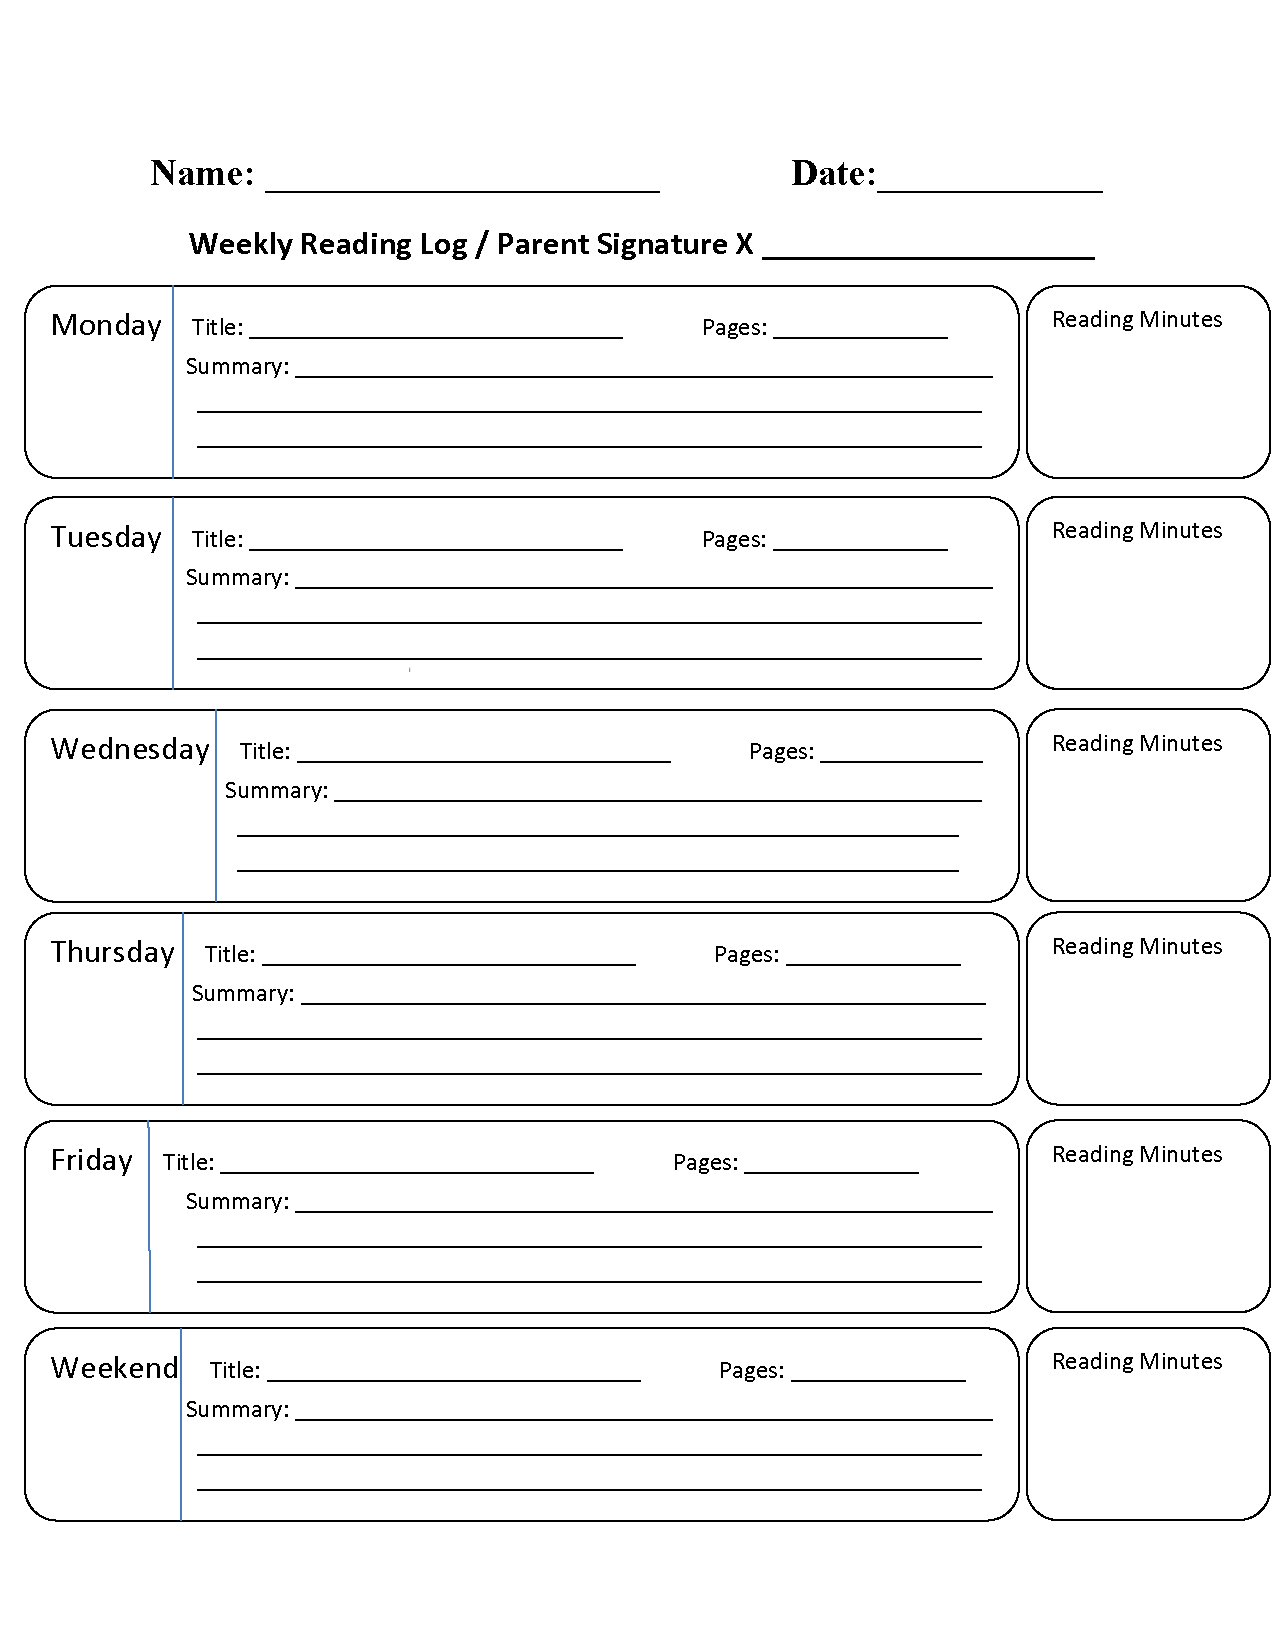 Uncategorized Log Worksheet weekly reading log englishlinx com board pinterest log